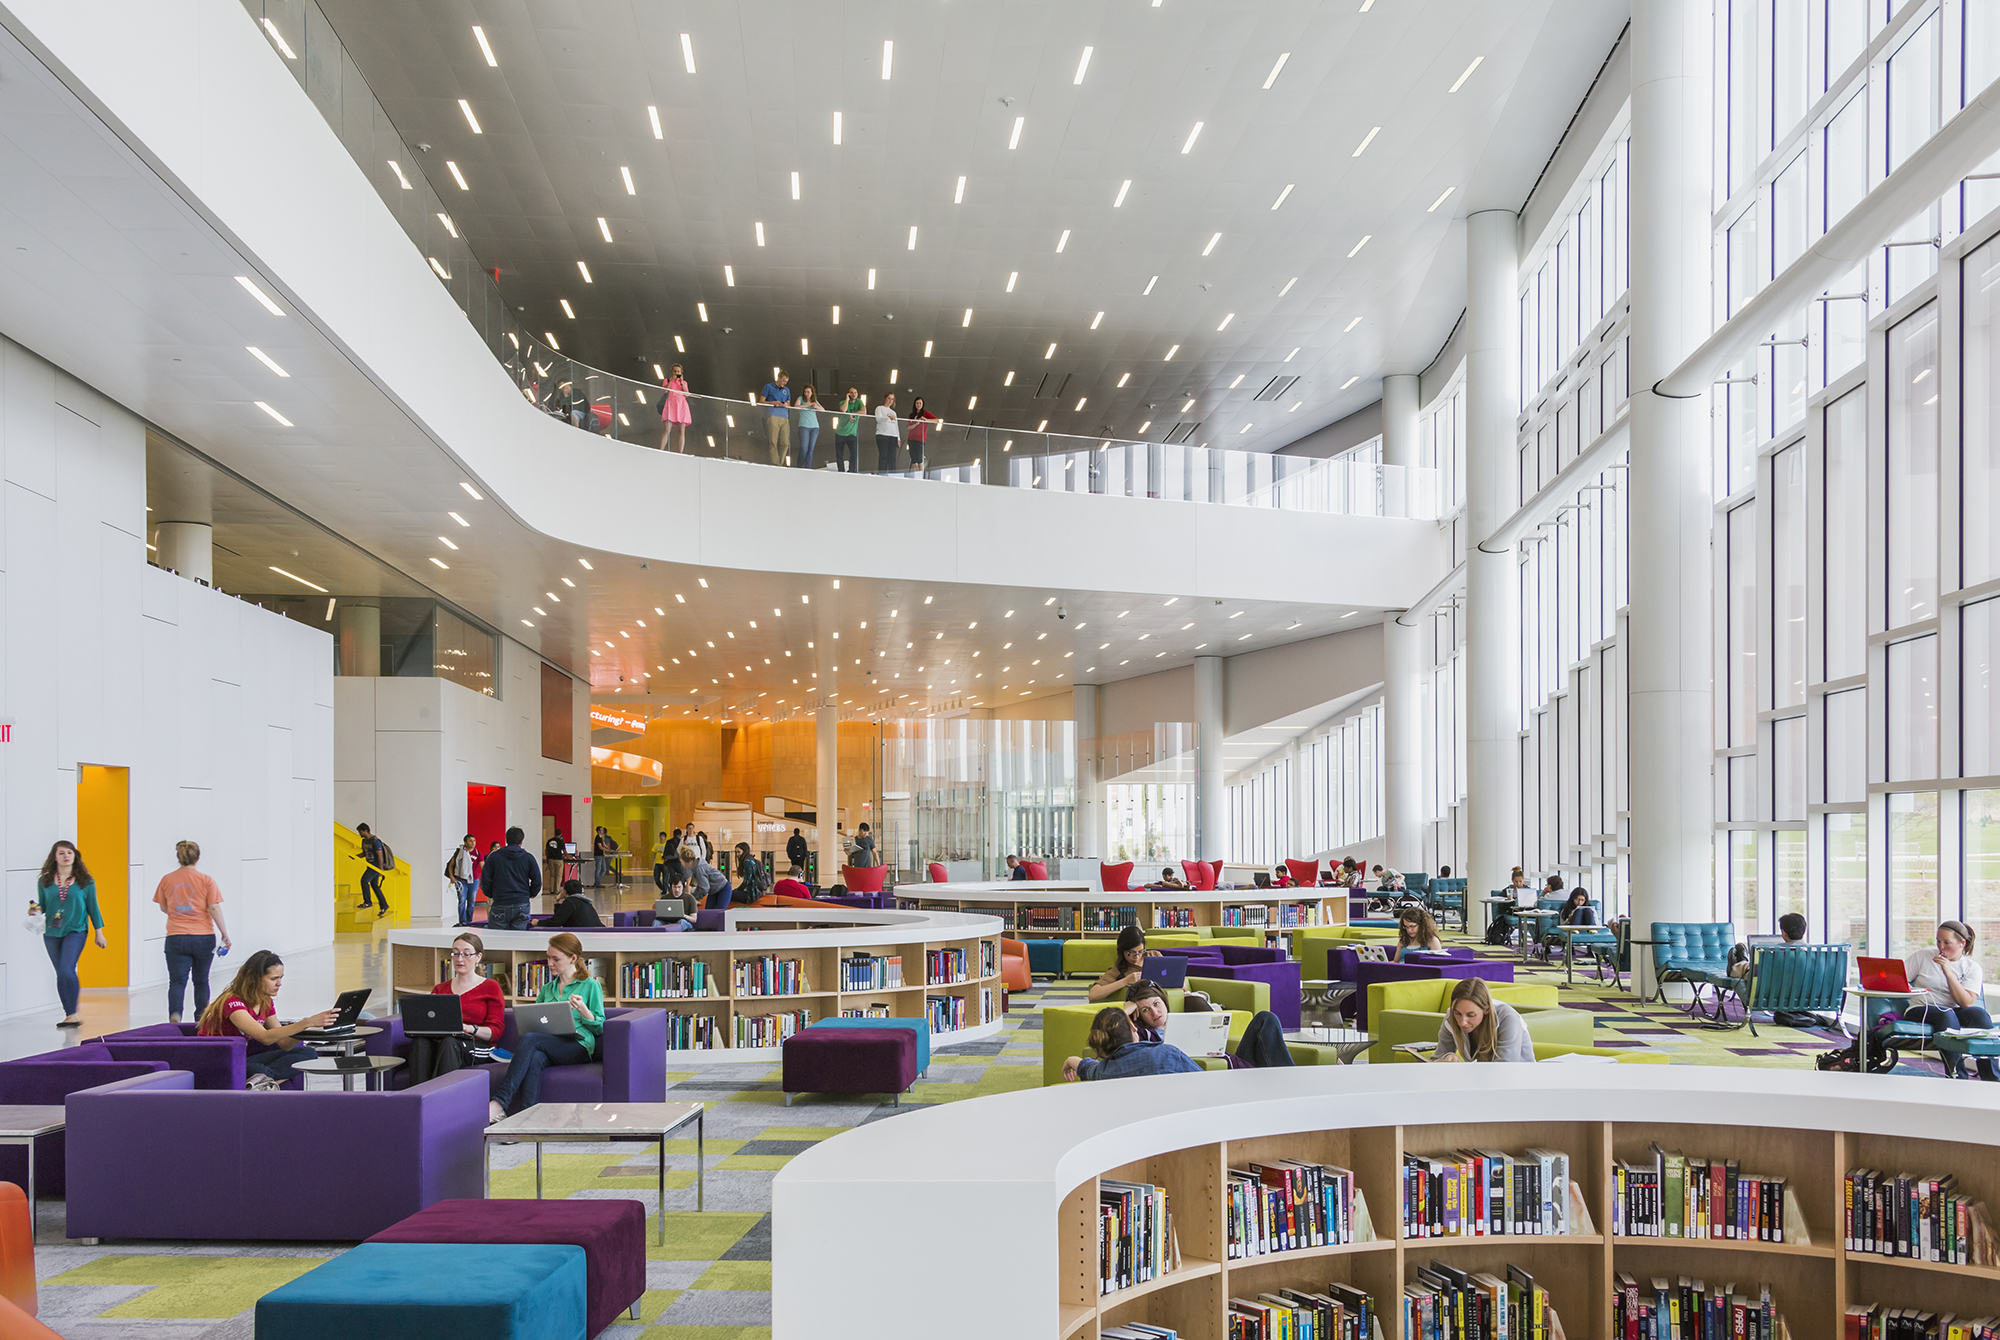 A huge open lobby, glass walled on one side, with colorful chairs and books